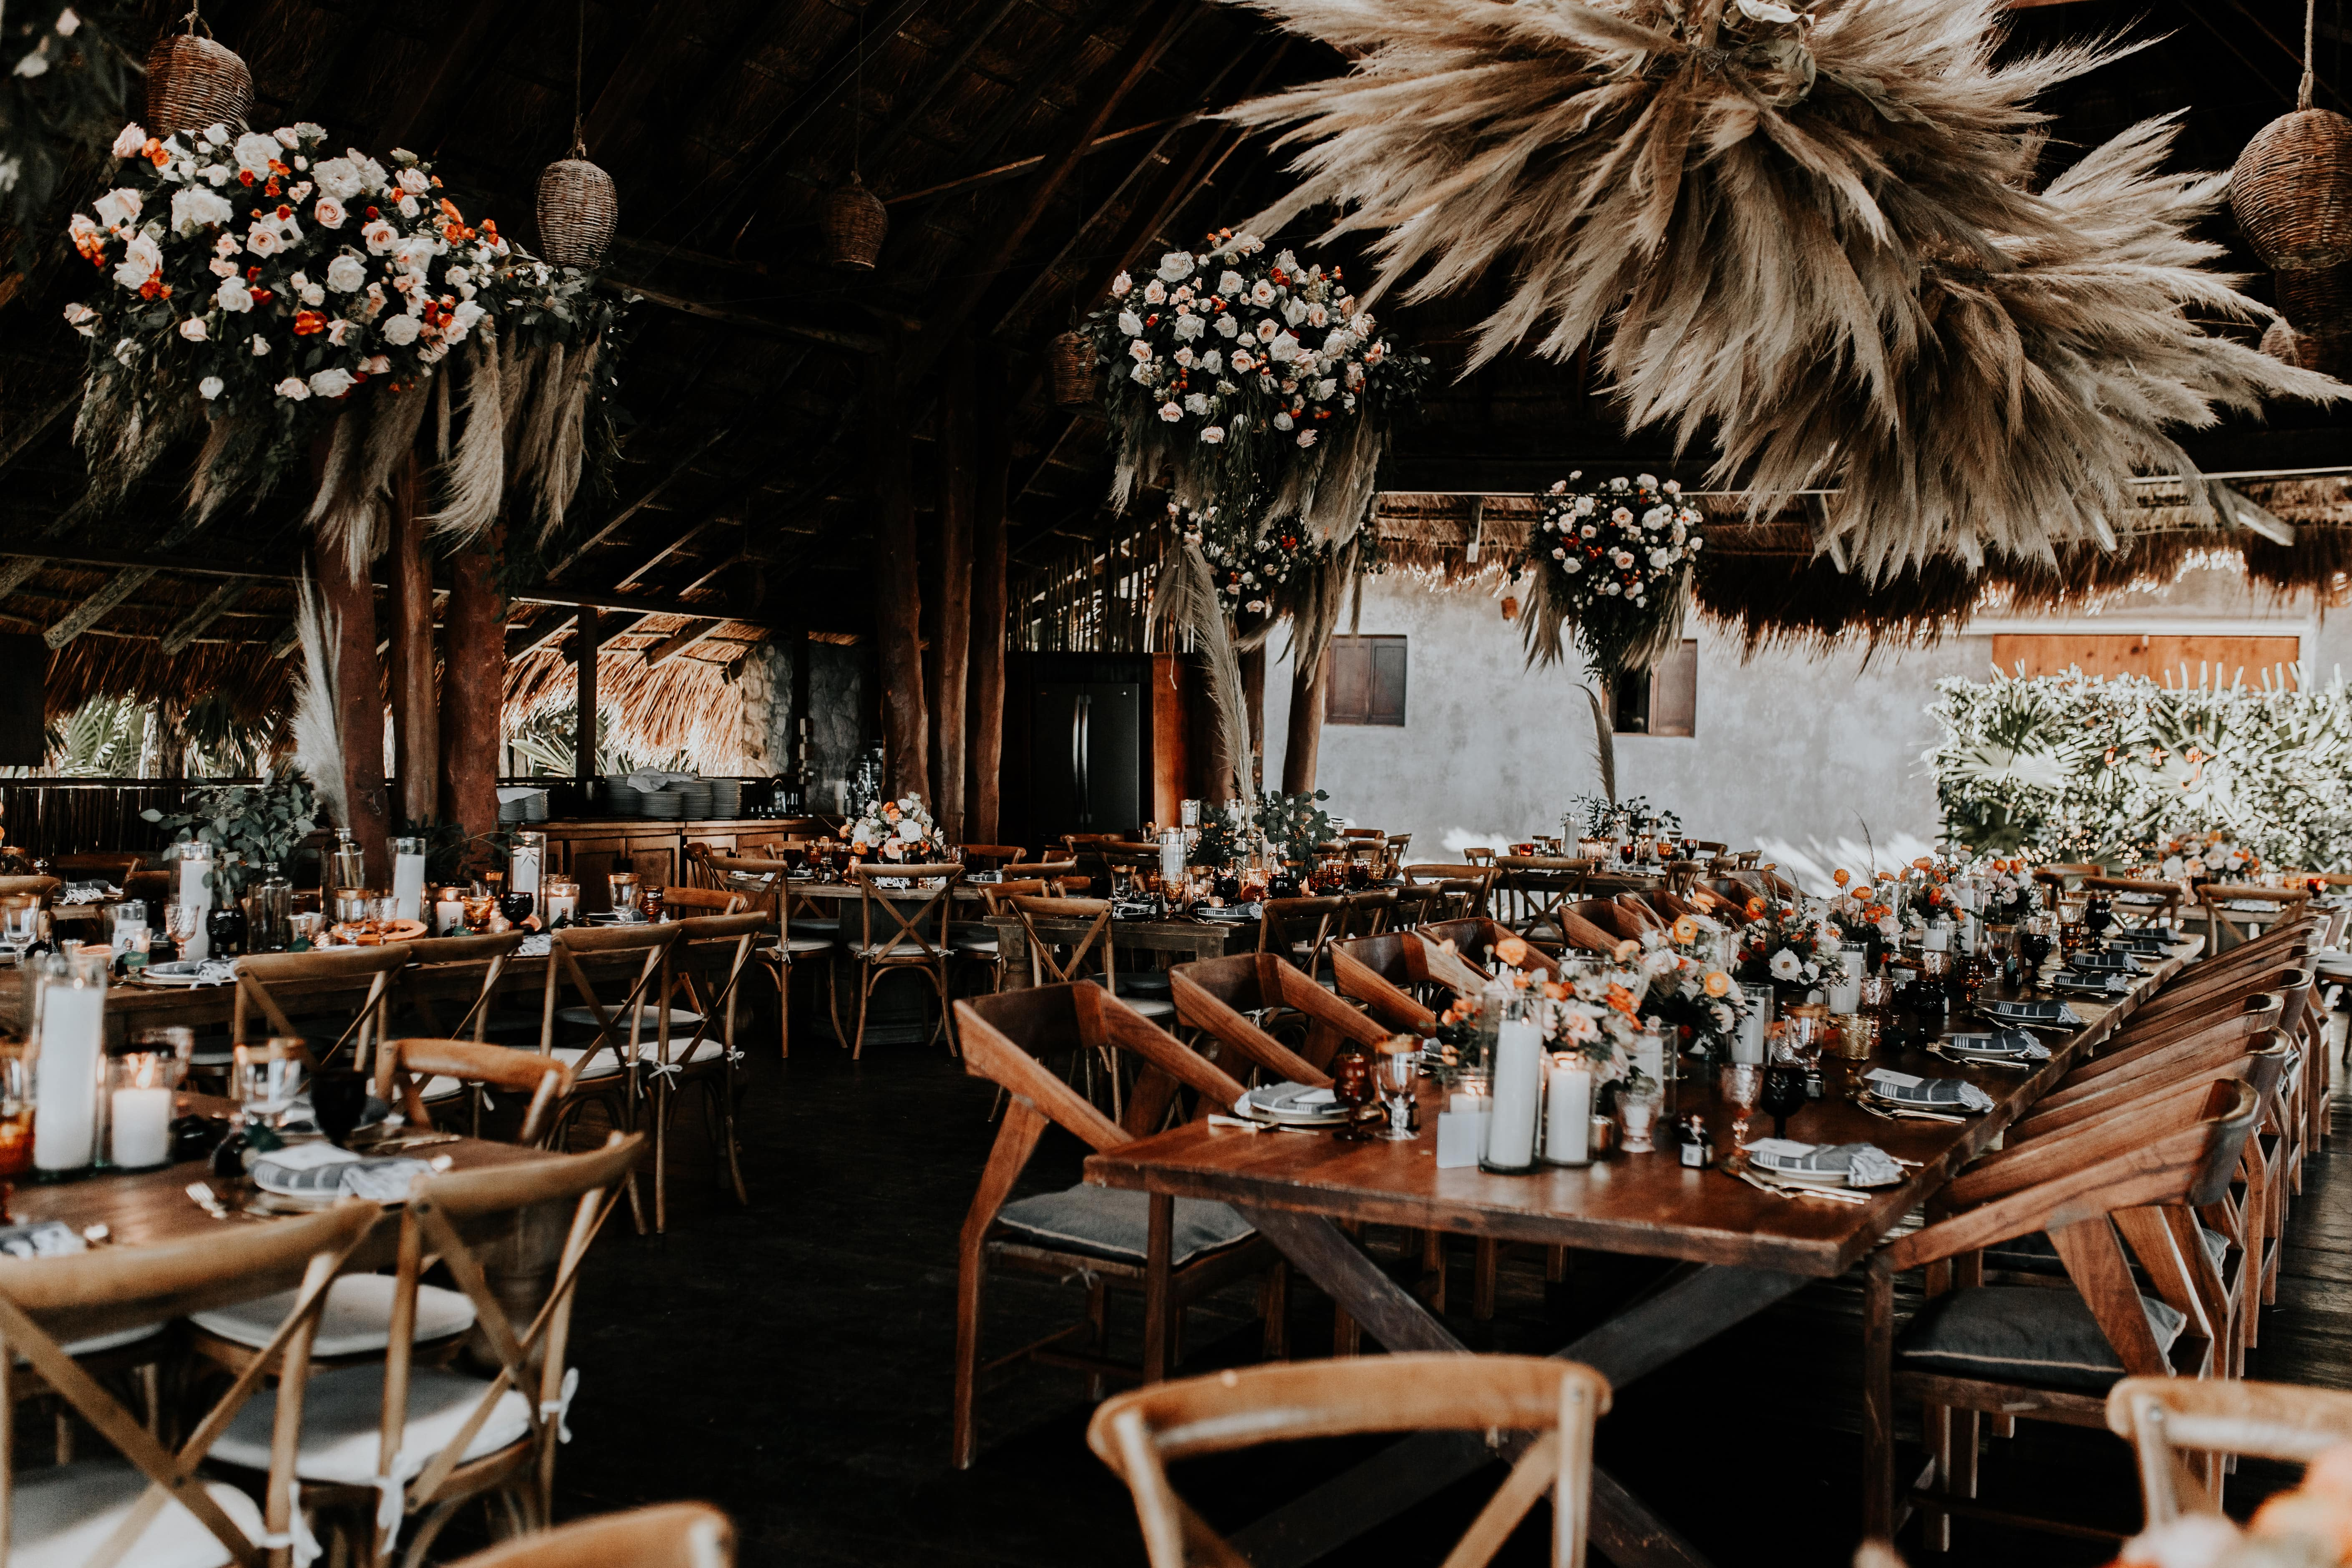 Archive Rentals Takes Event Rentals & Event Design to a whole other level, Photography by Brooke Taelor Photography for Destination Wedding Blog Adriana Weddings